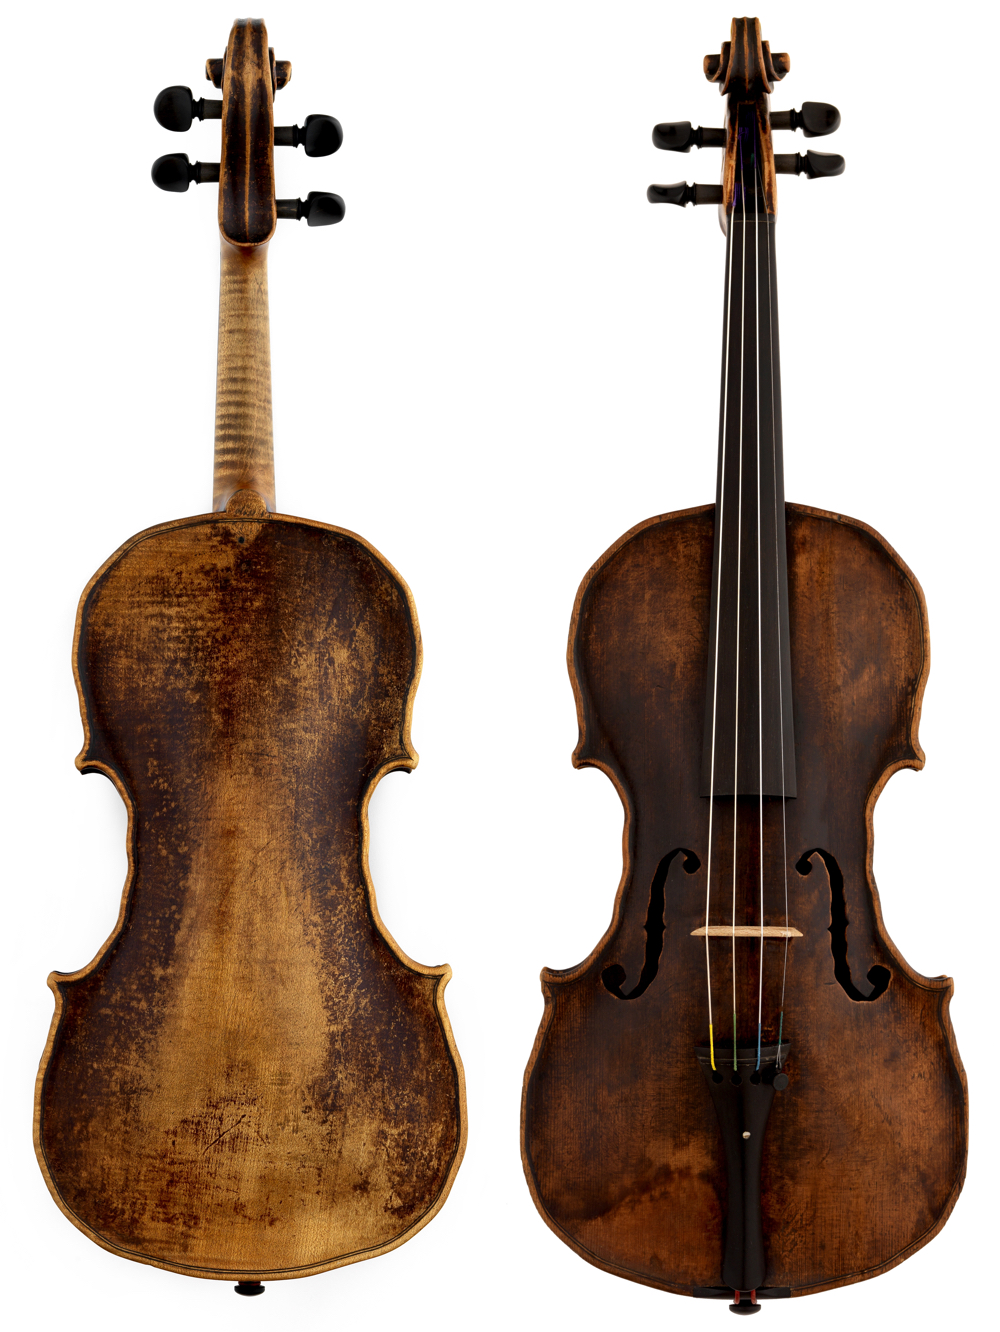 Gedler violin 1775. Photos courtesy of the ChiMei Museum